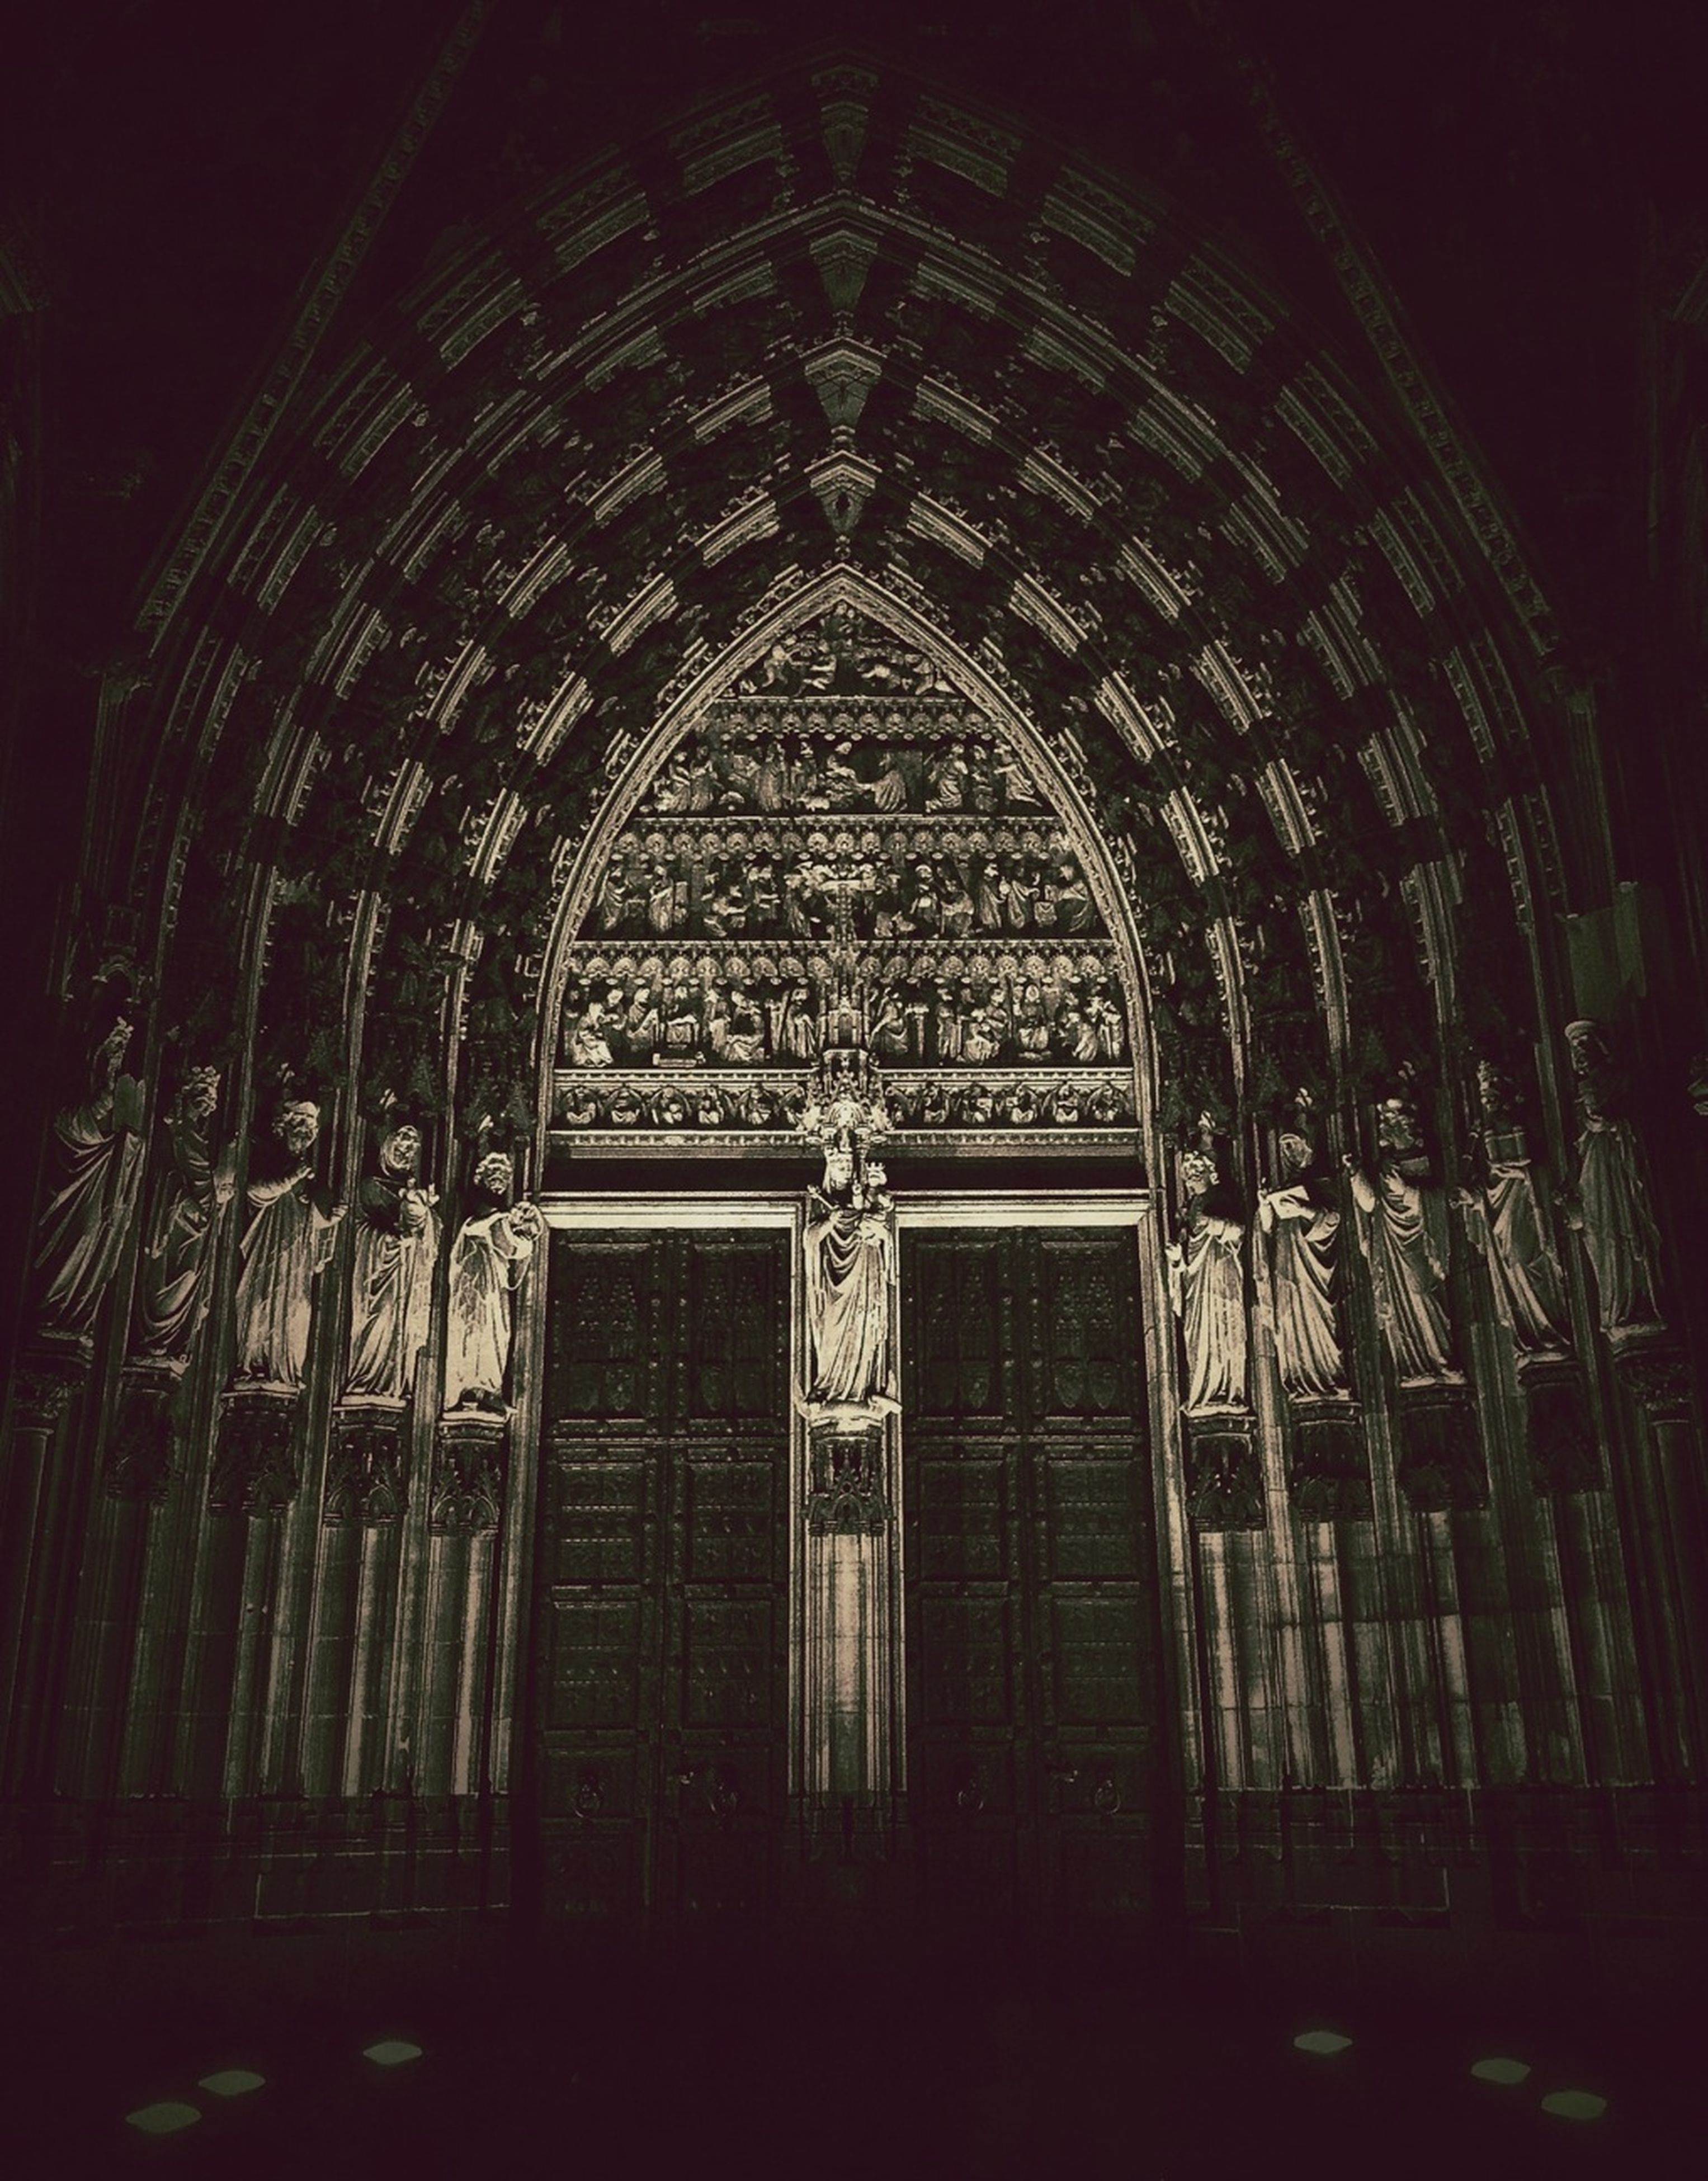 place of worship, religion, architecture, spirituality, built structure, church, indoors, arch, window, building exterior, low angle view, cathedral, ornate, entrance, door, pattern, history, design